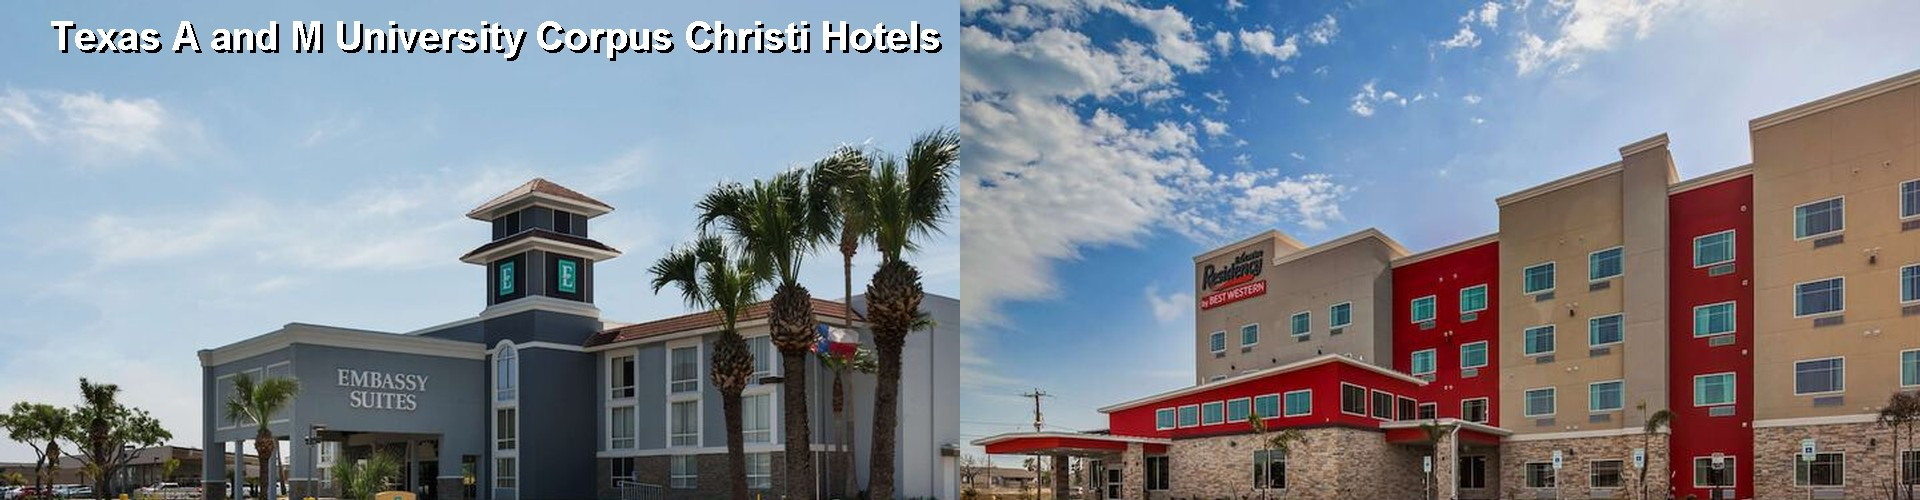 5 Best Hotels near Texas A and M University Corpus Christi